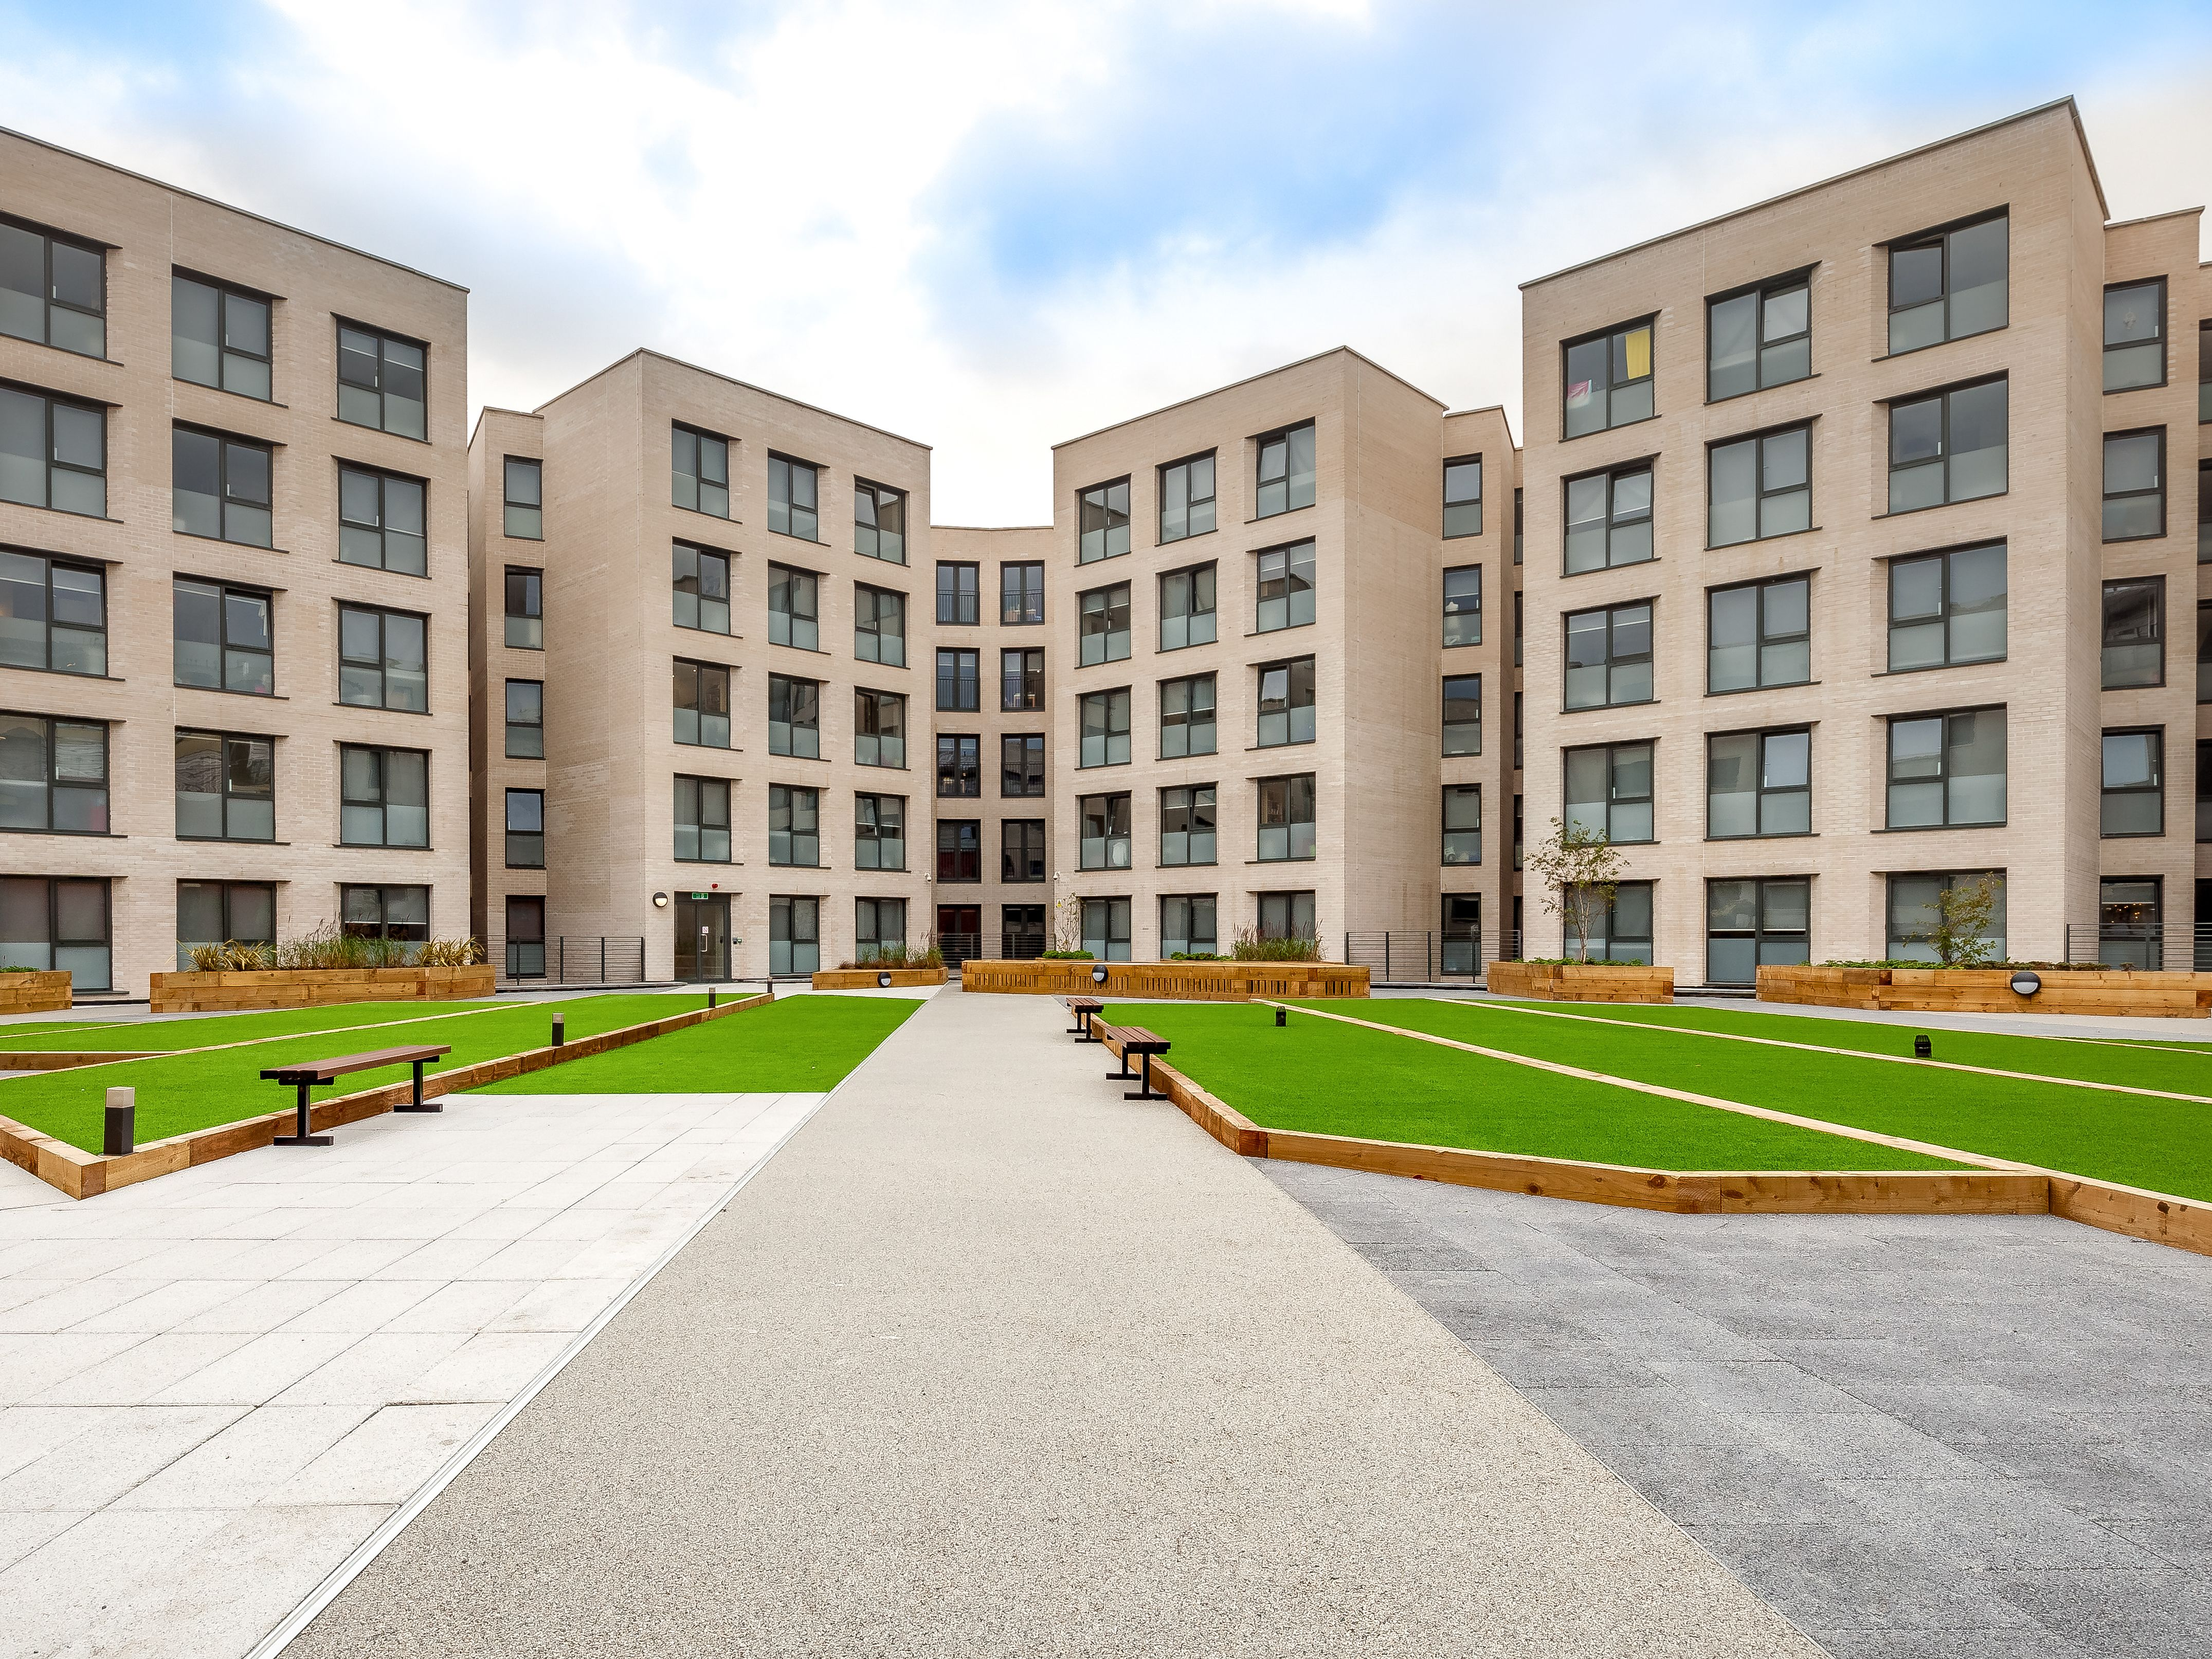 Exterior shot of Sketch House hall of residence